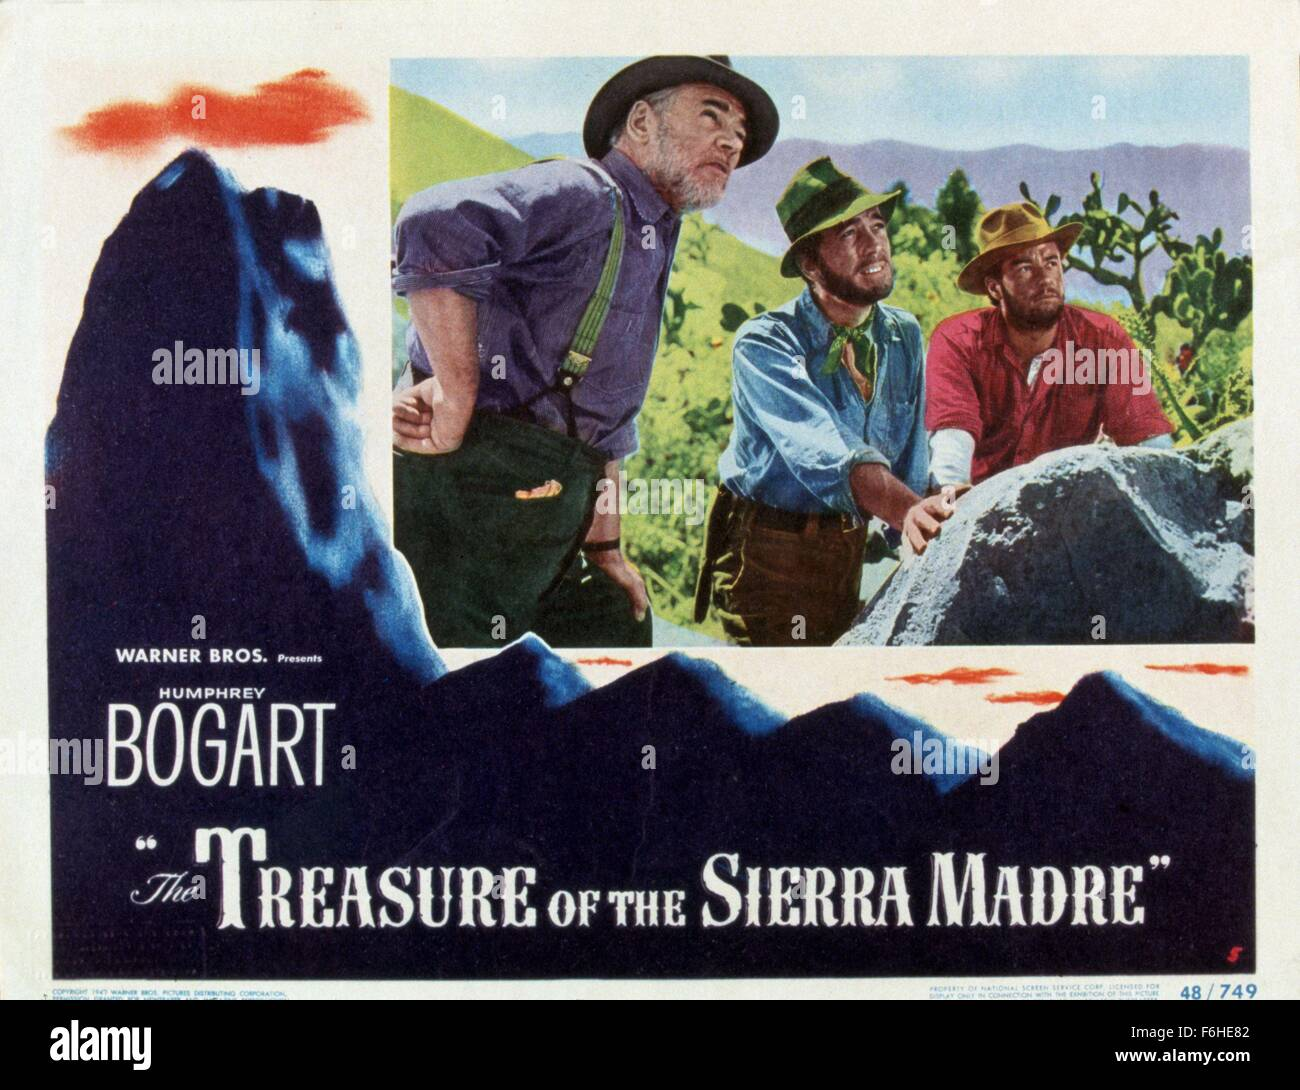 a review of the movie treasure of the sierra madres Academy award winners humphrey bogart and walter huston star with tim holt in this classic tale of the cunning, greed and paranoia caused by the treasure of the sierra madre.